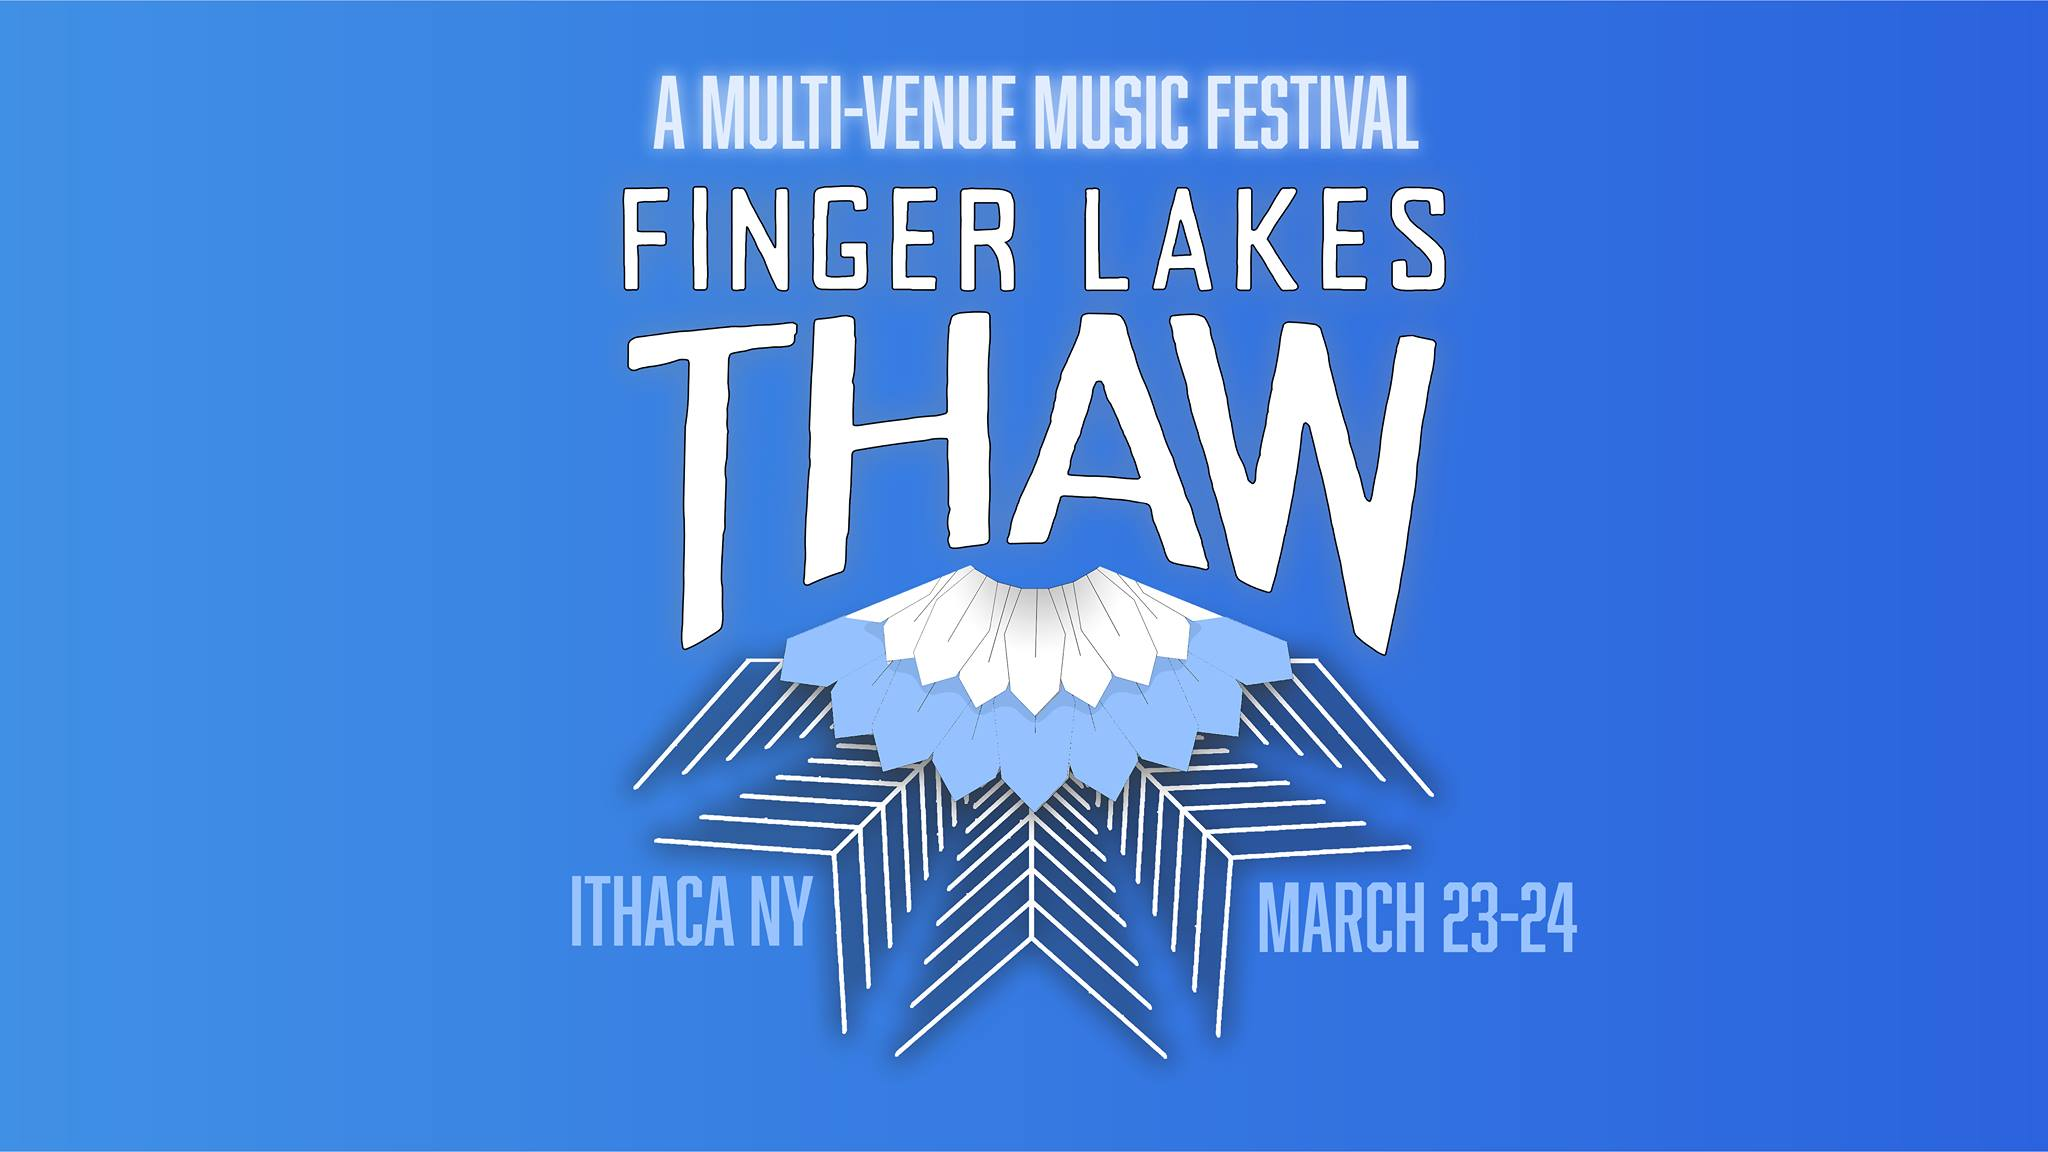 Finger Lakes Thaw Festival Ithaca The Range live music twithaca ithaca commons downtown